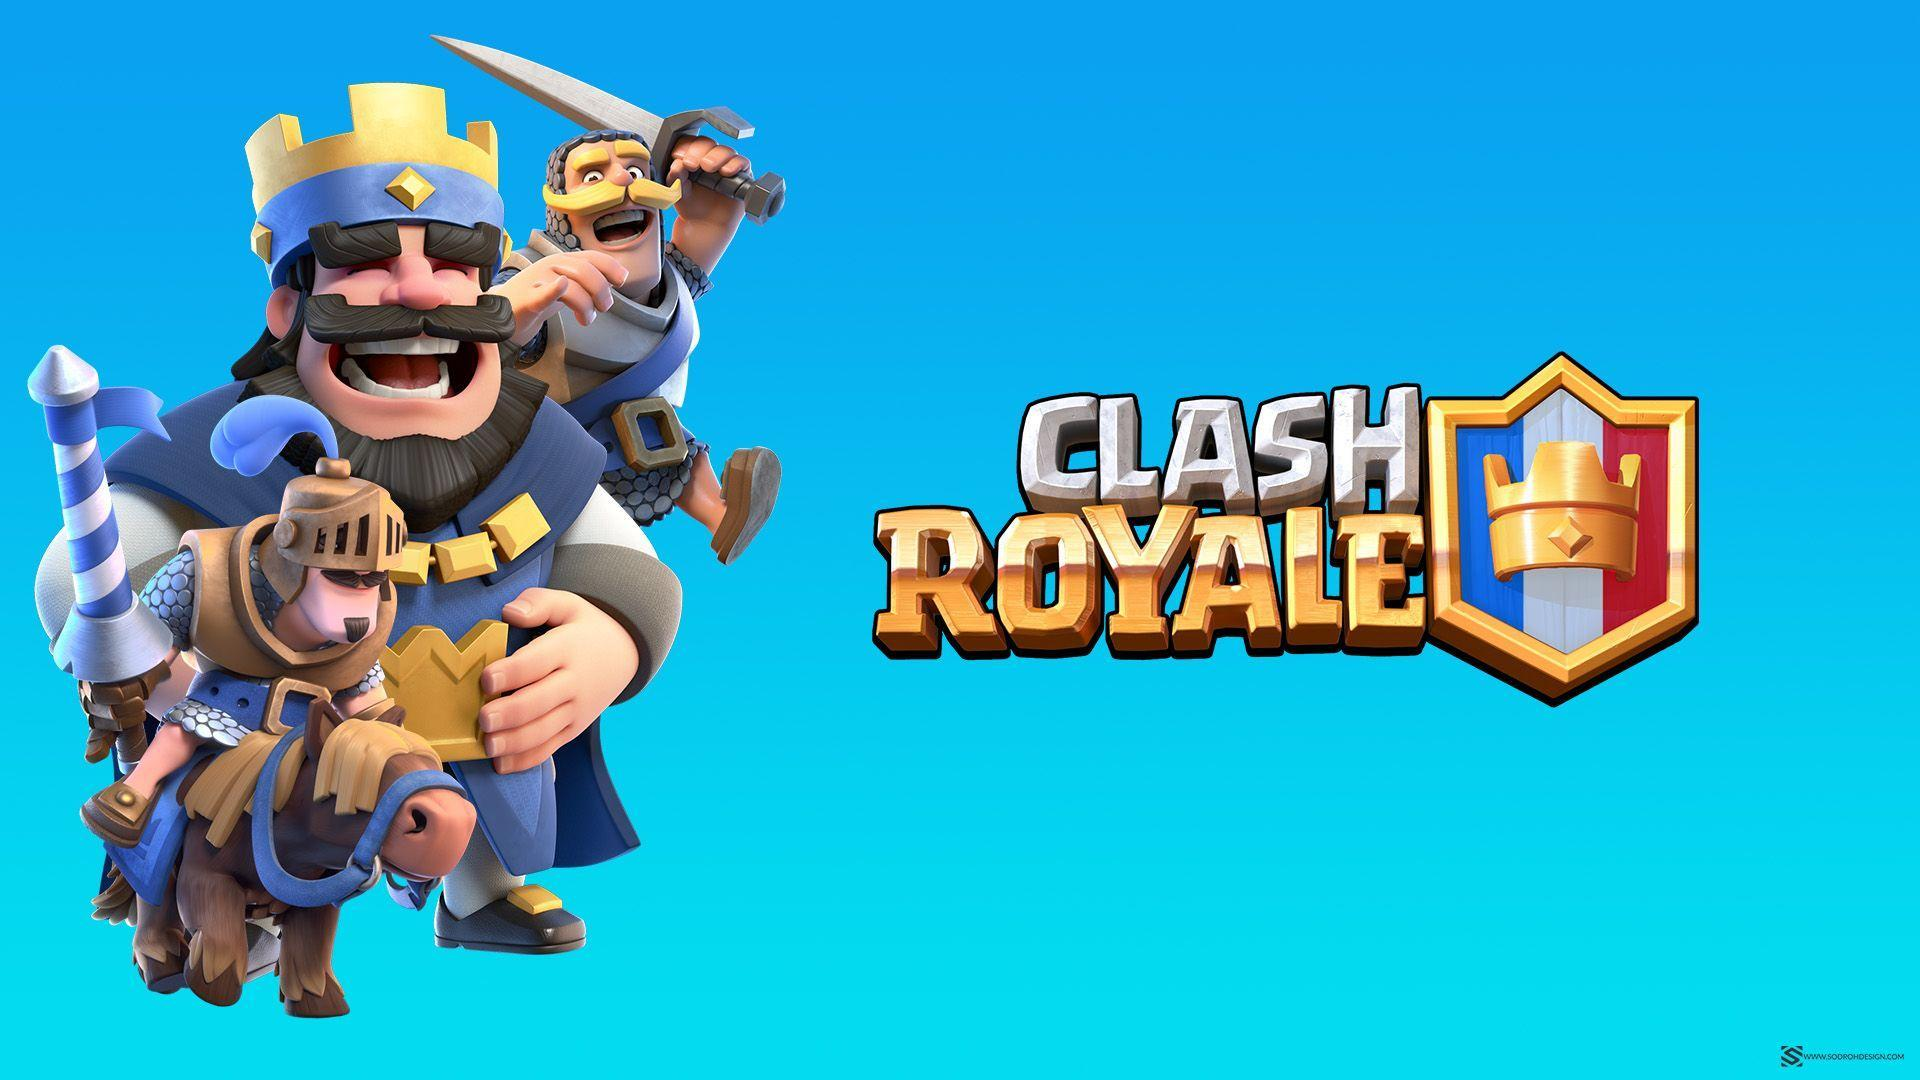 Clash royale wallpapers wallpaper cave for Fotos 2048x1152